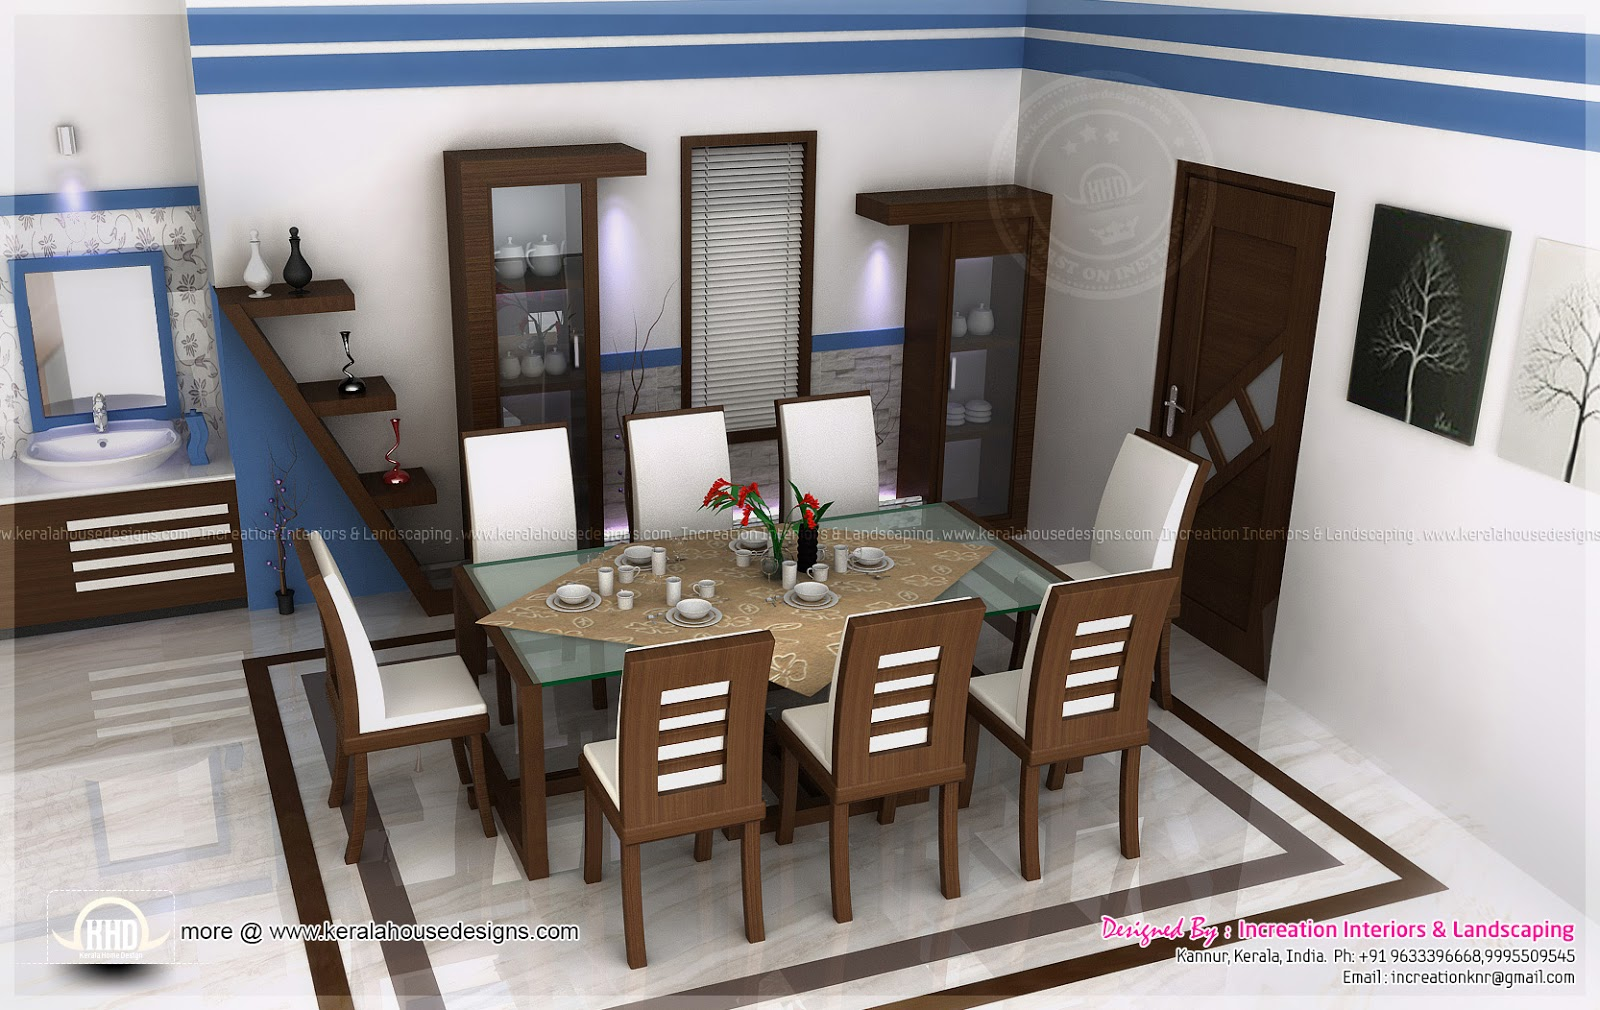 House interior ideas in 3d rendering kerala home design and floor plans Interior design ideas for the home